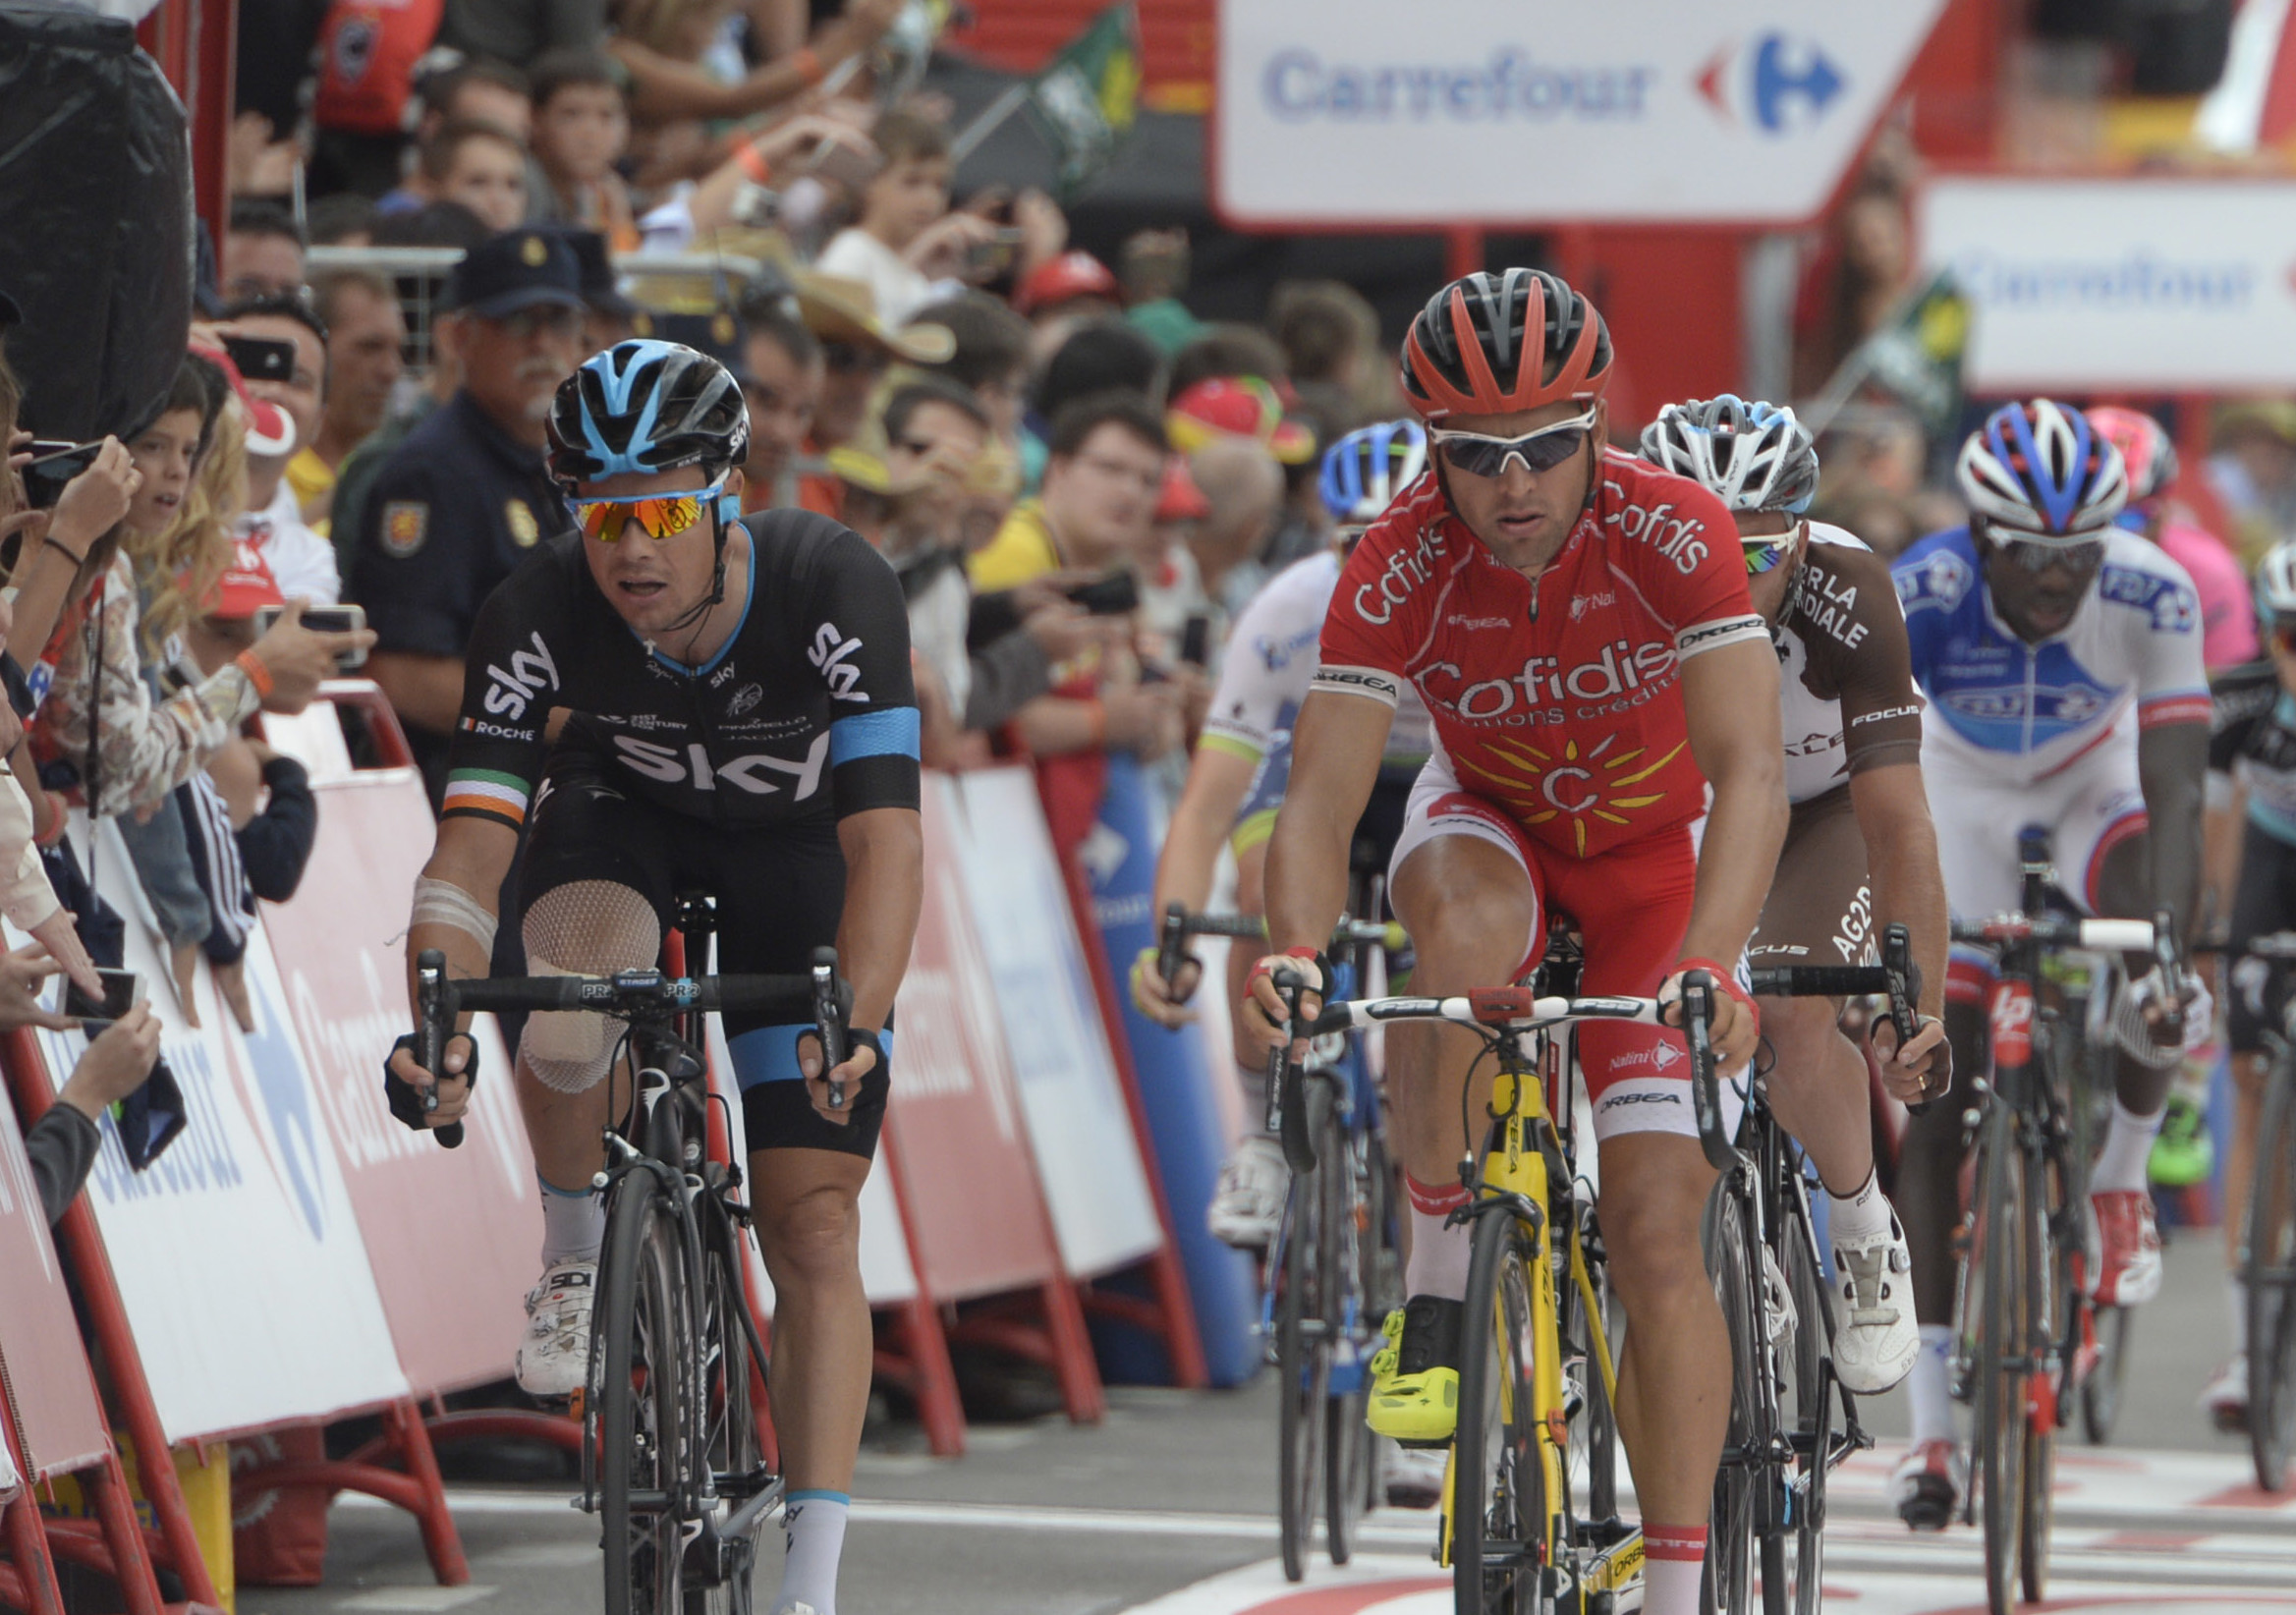 Aggressive Roche on the offensive to grab podium finish at Vuelta